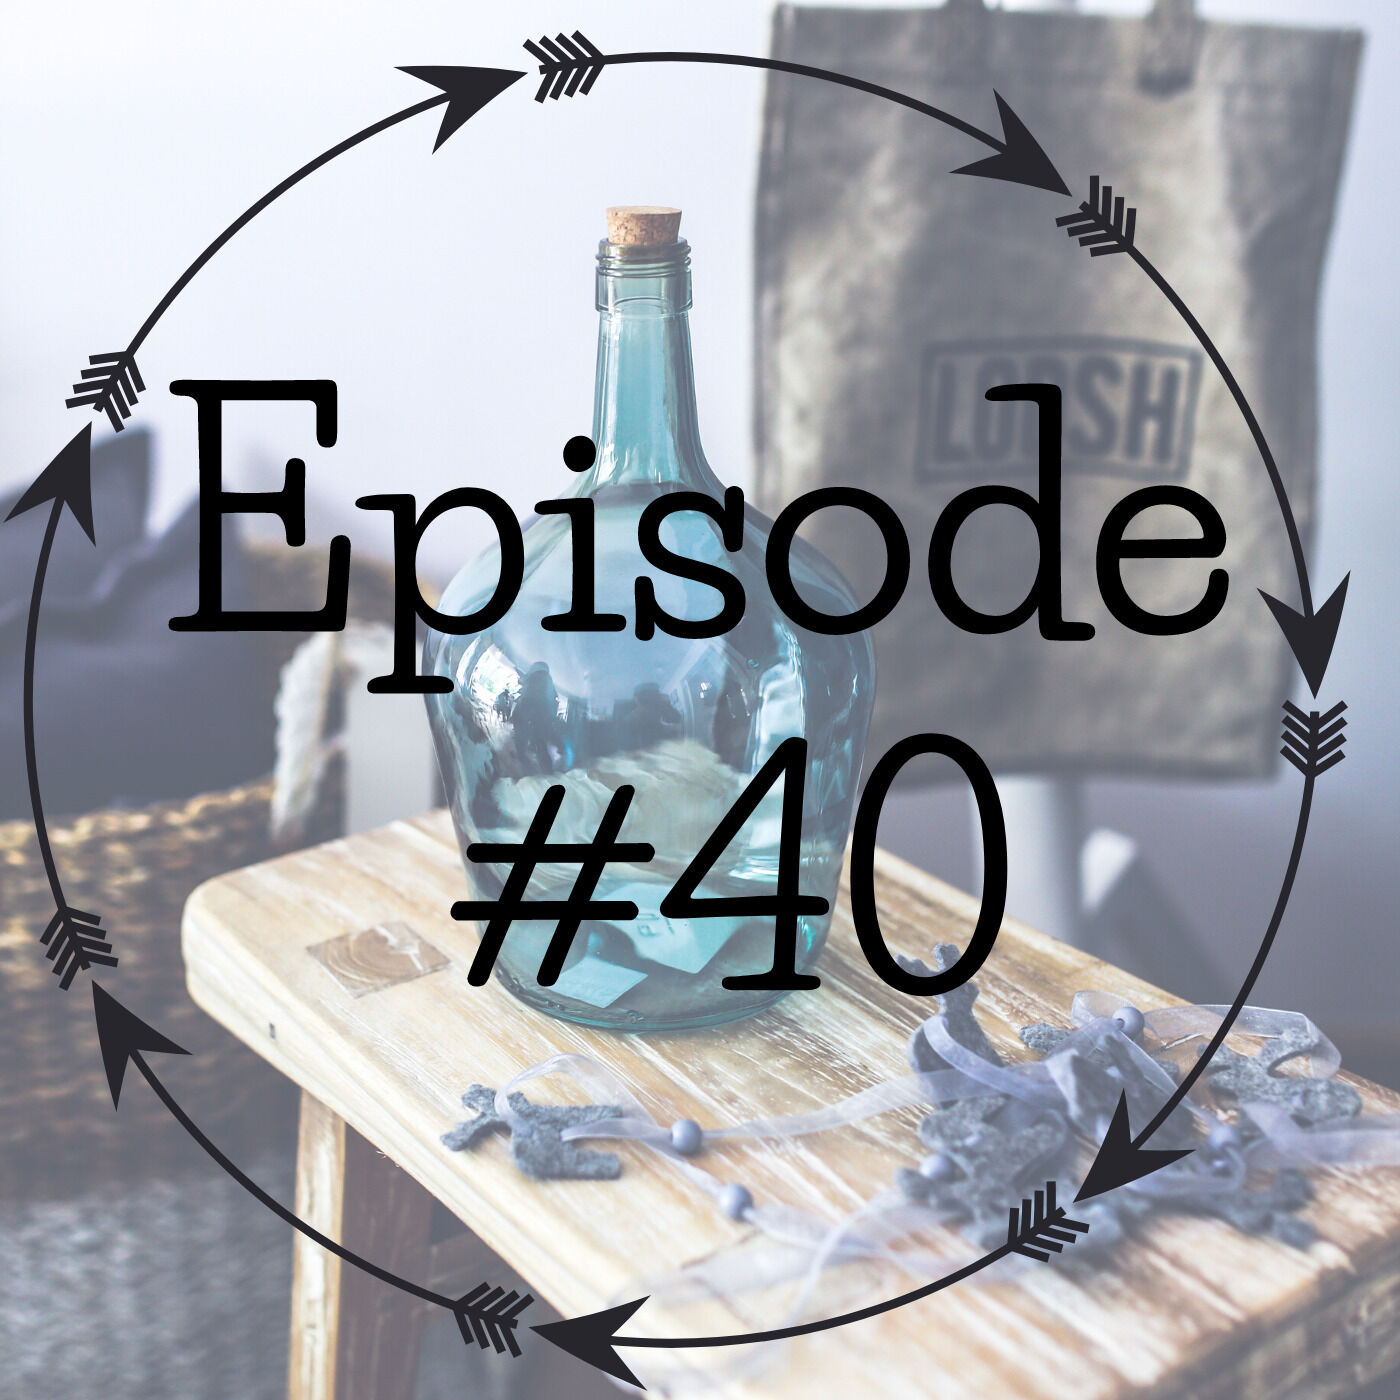 Episode #40: A dilemma about a client asking the doula to change their role and being 'just' a doula.